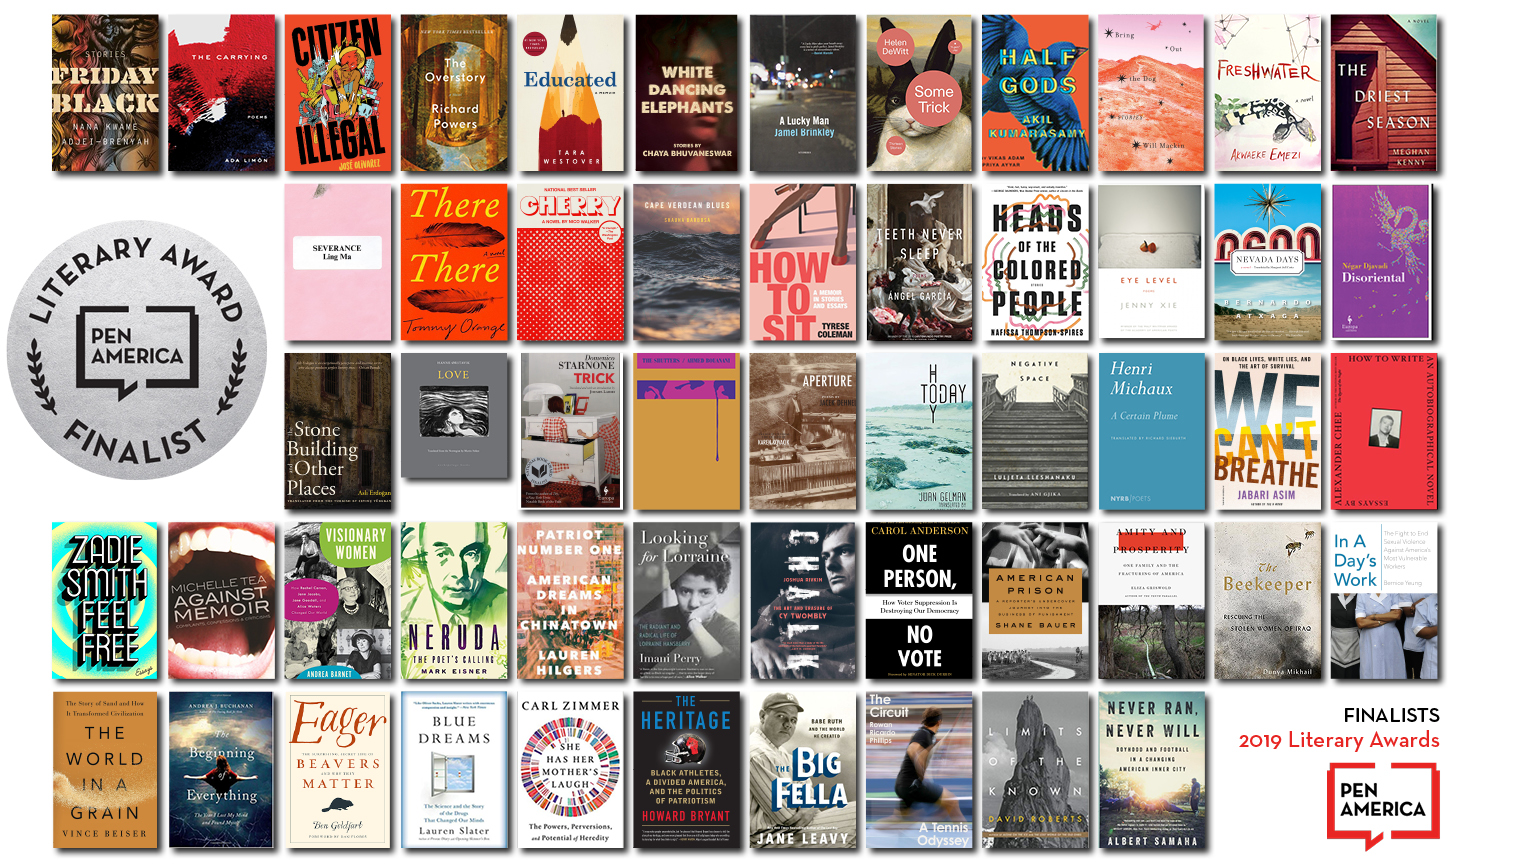 Book covers of the 2019 PEN America Literary Awards Finalists